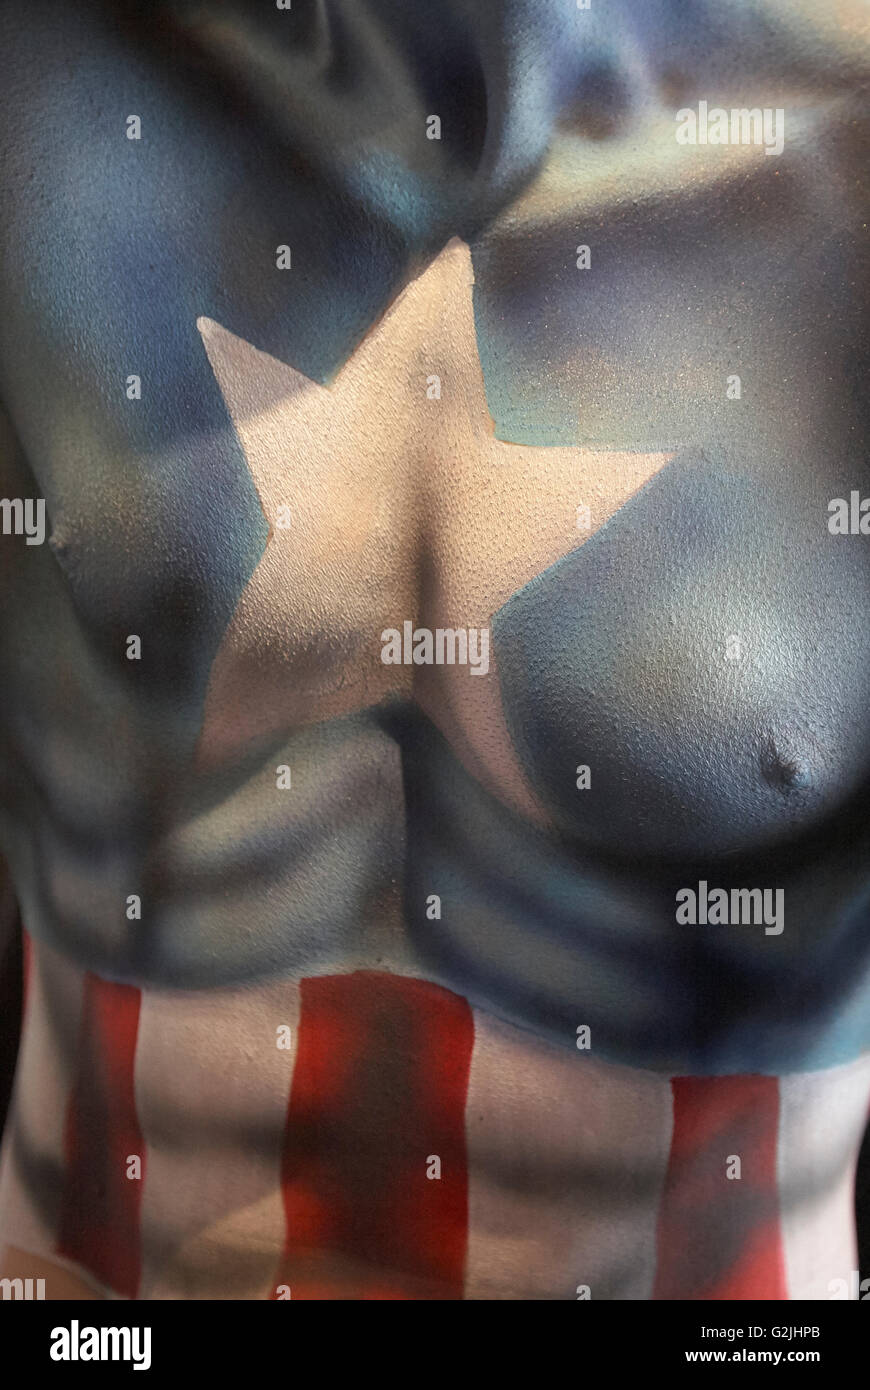 Body paint of Captain America on a man - Stock Image